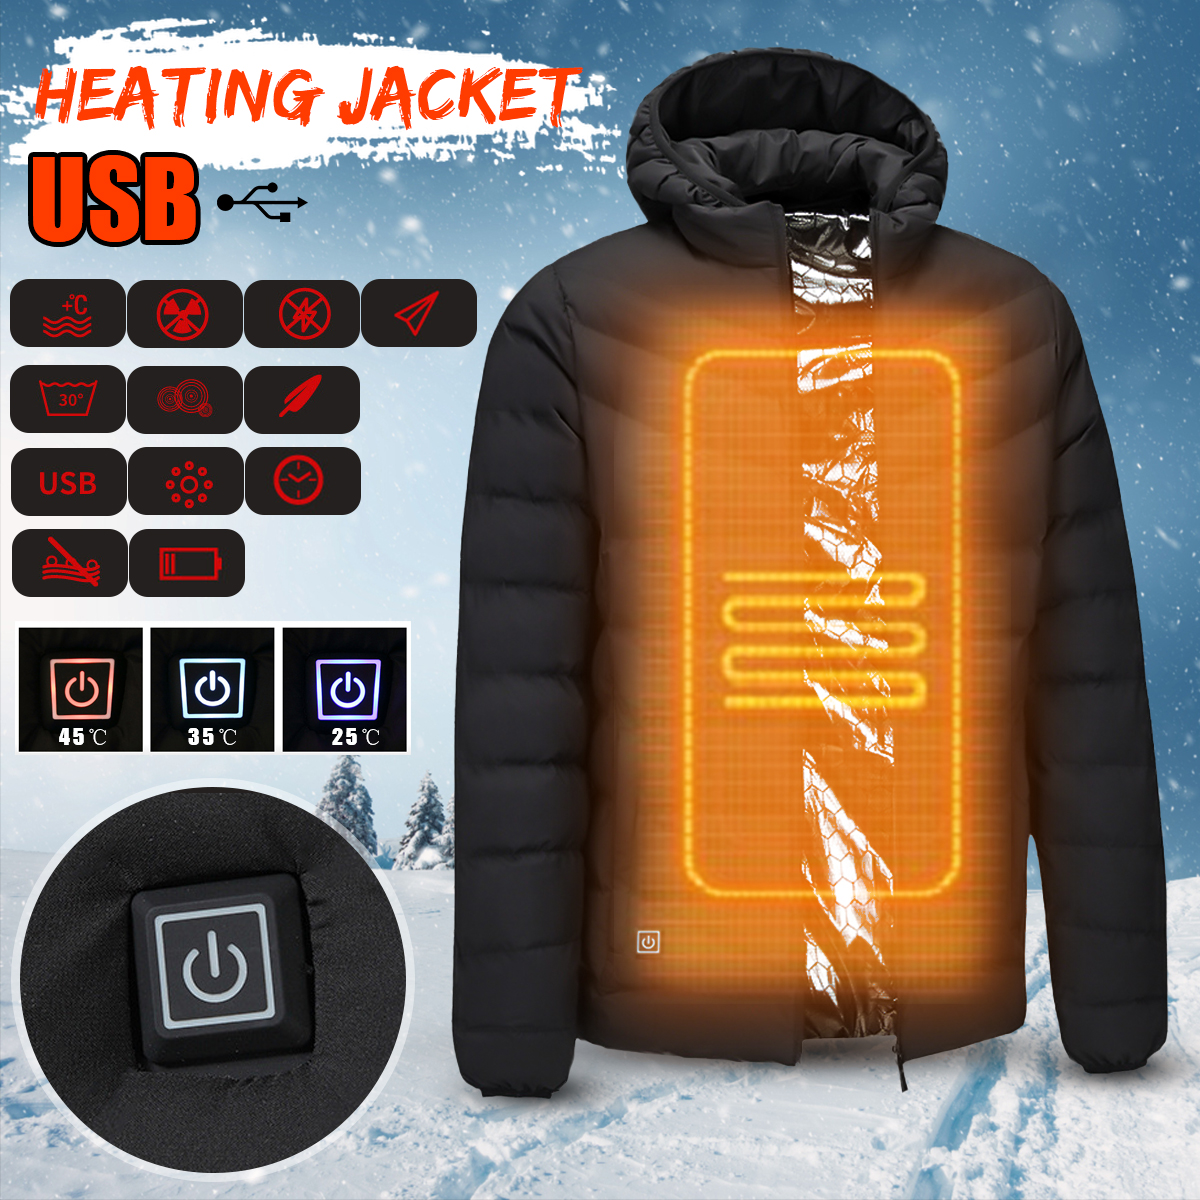 Mens Winter Heated Safety Vest Jacket USB Hooded Work Heating Jacket Vest Coats Adjustable Temperature Control Safety Clothing